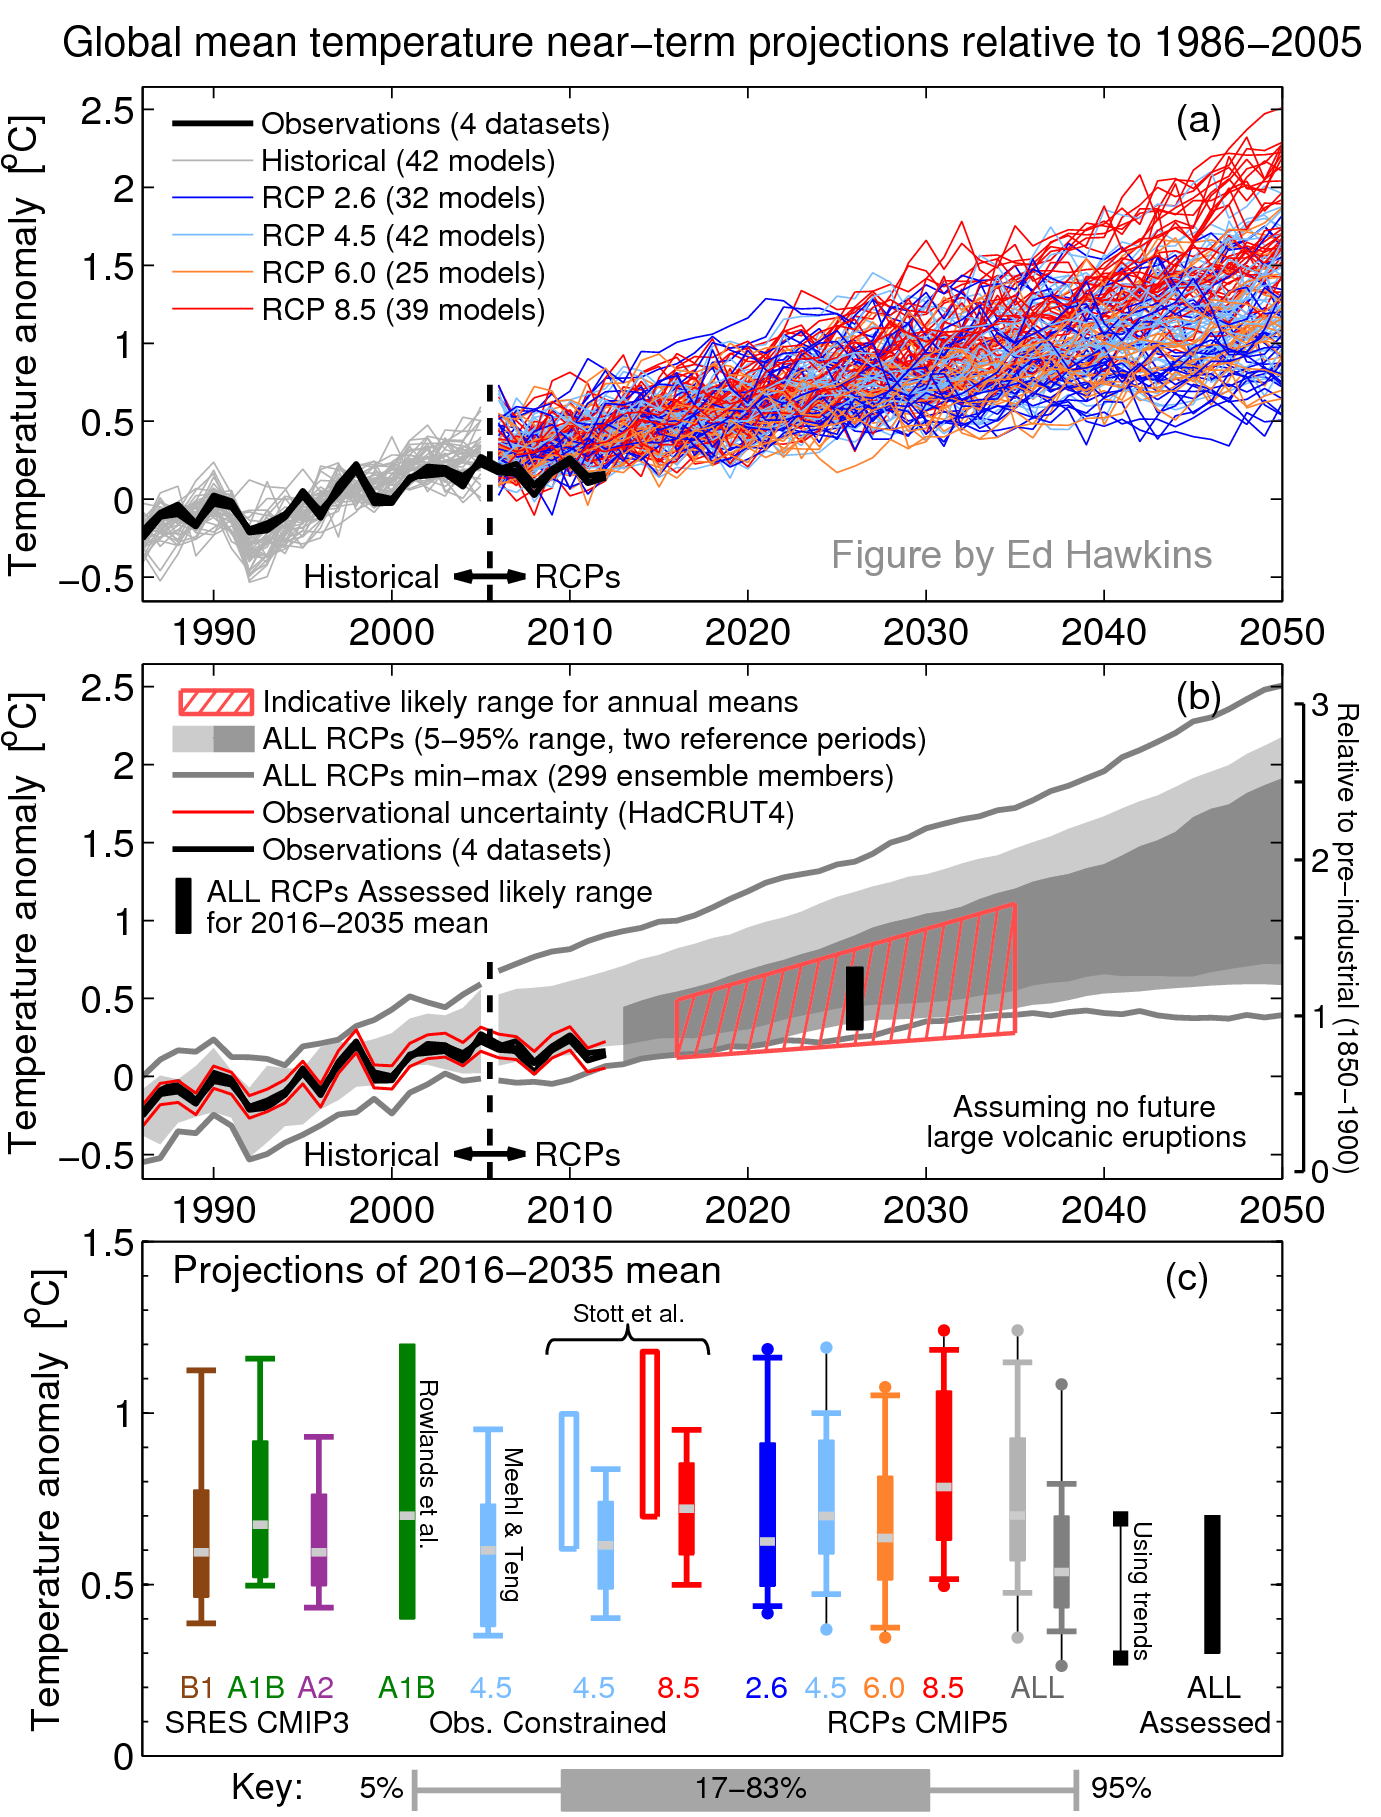 Spinning the climate model observations comparison part iii ed hawkins has a new post near term global surface temperature projections in ipcc ar5 he refers to figure 1125 in the ar5 report link to ch 11 nvjuhfo Choice Image